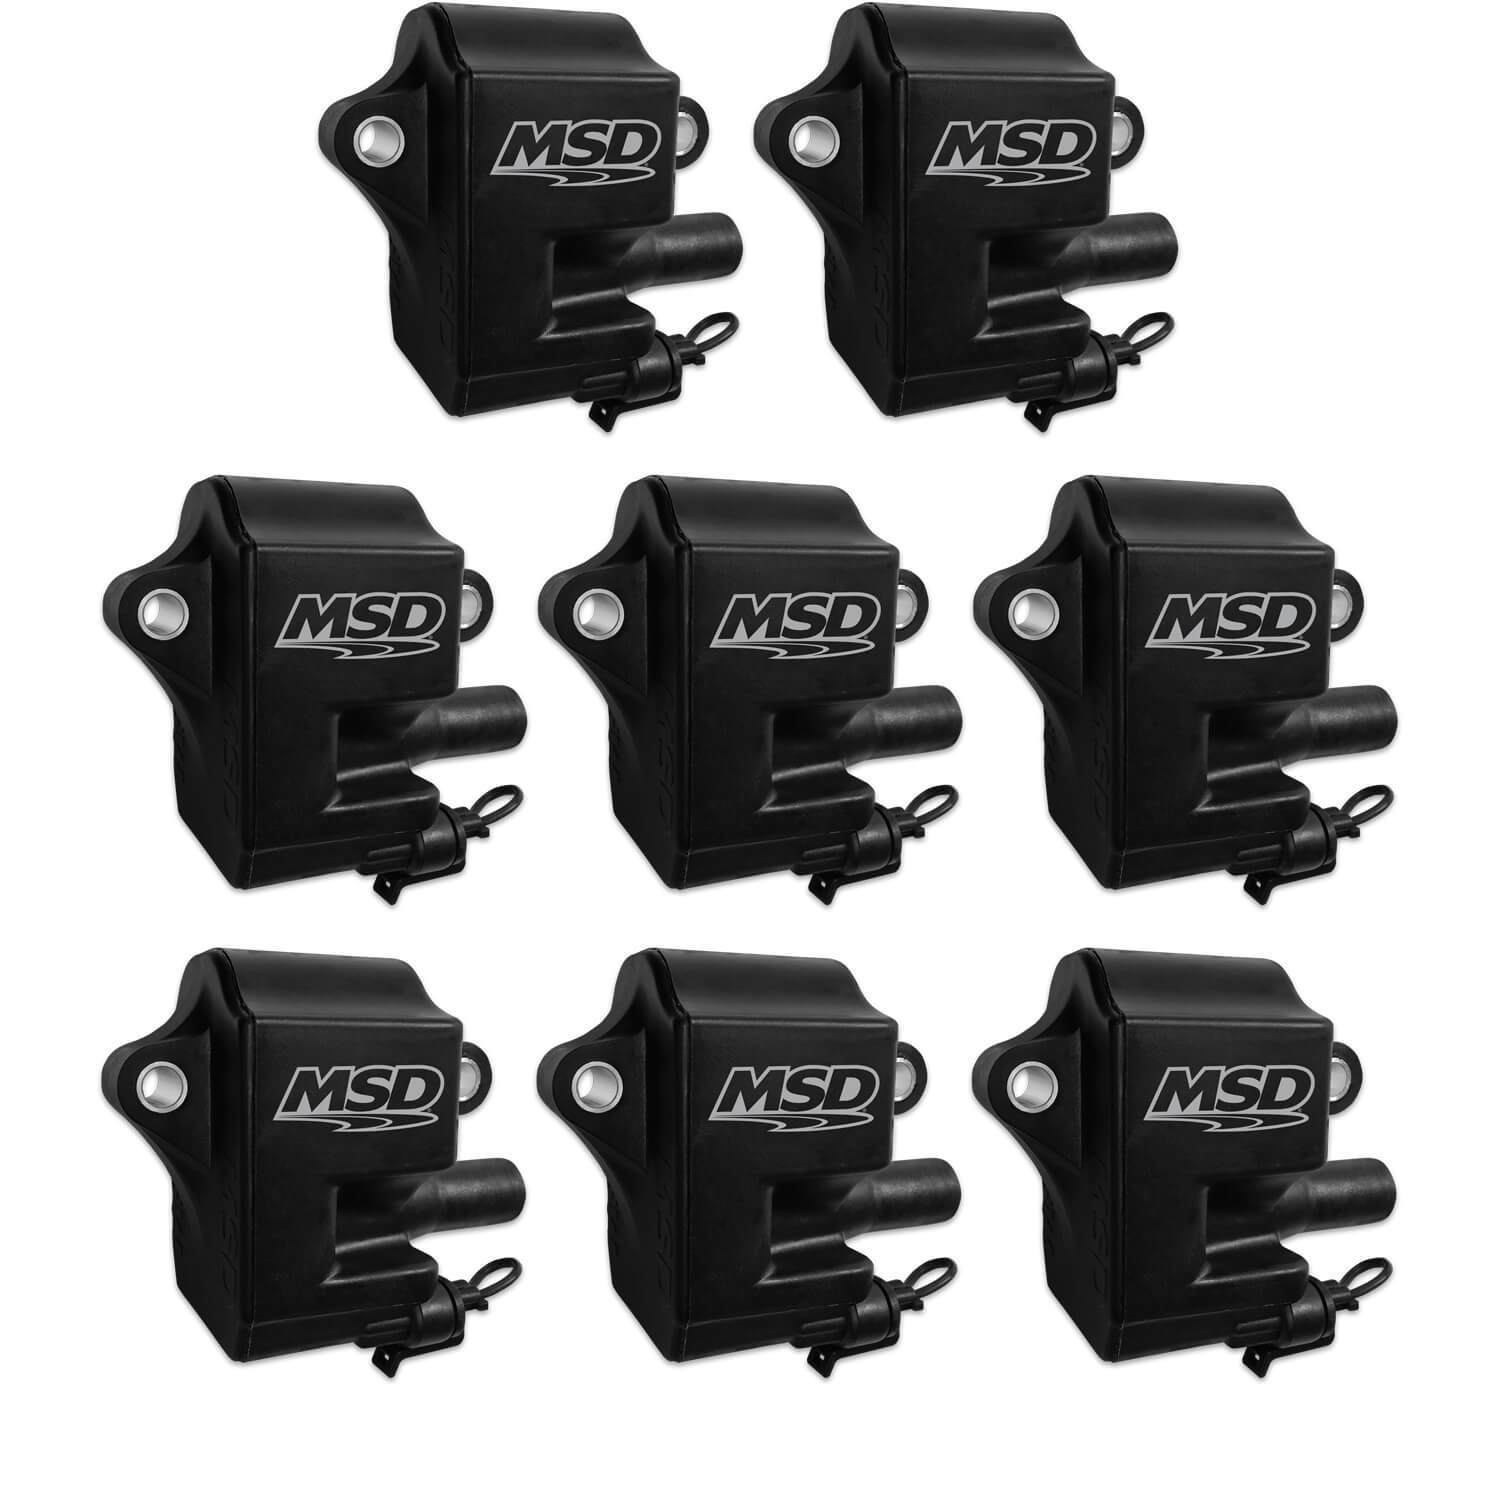 MSD Pro Power Coils - LS1/LS6 Engines - 828583